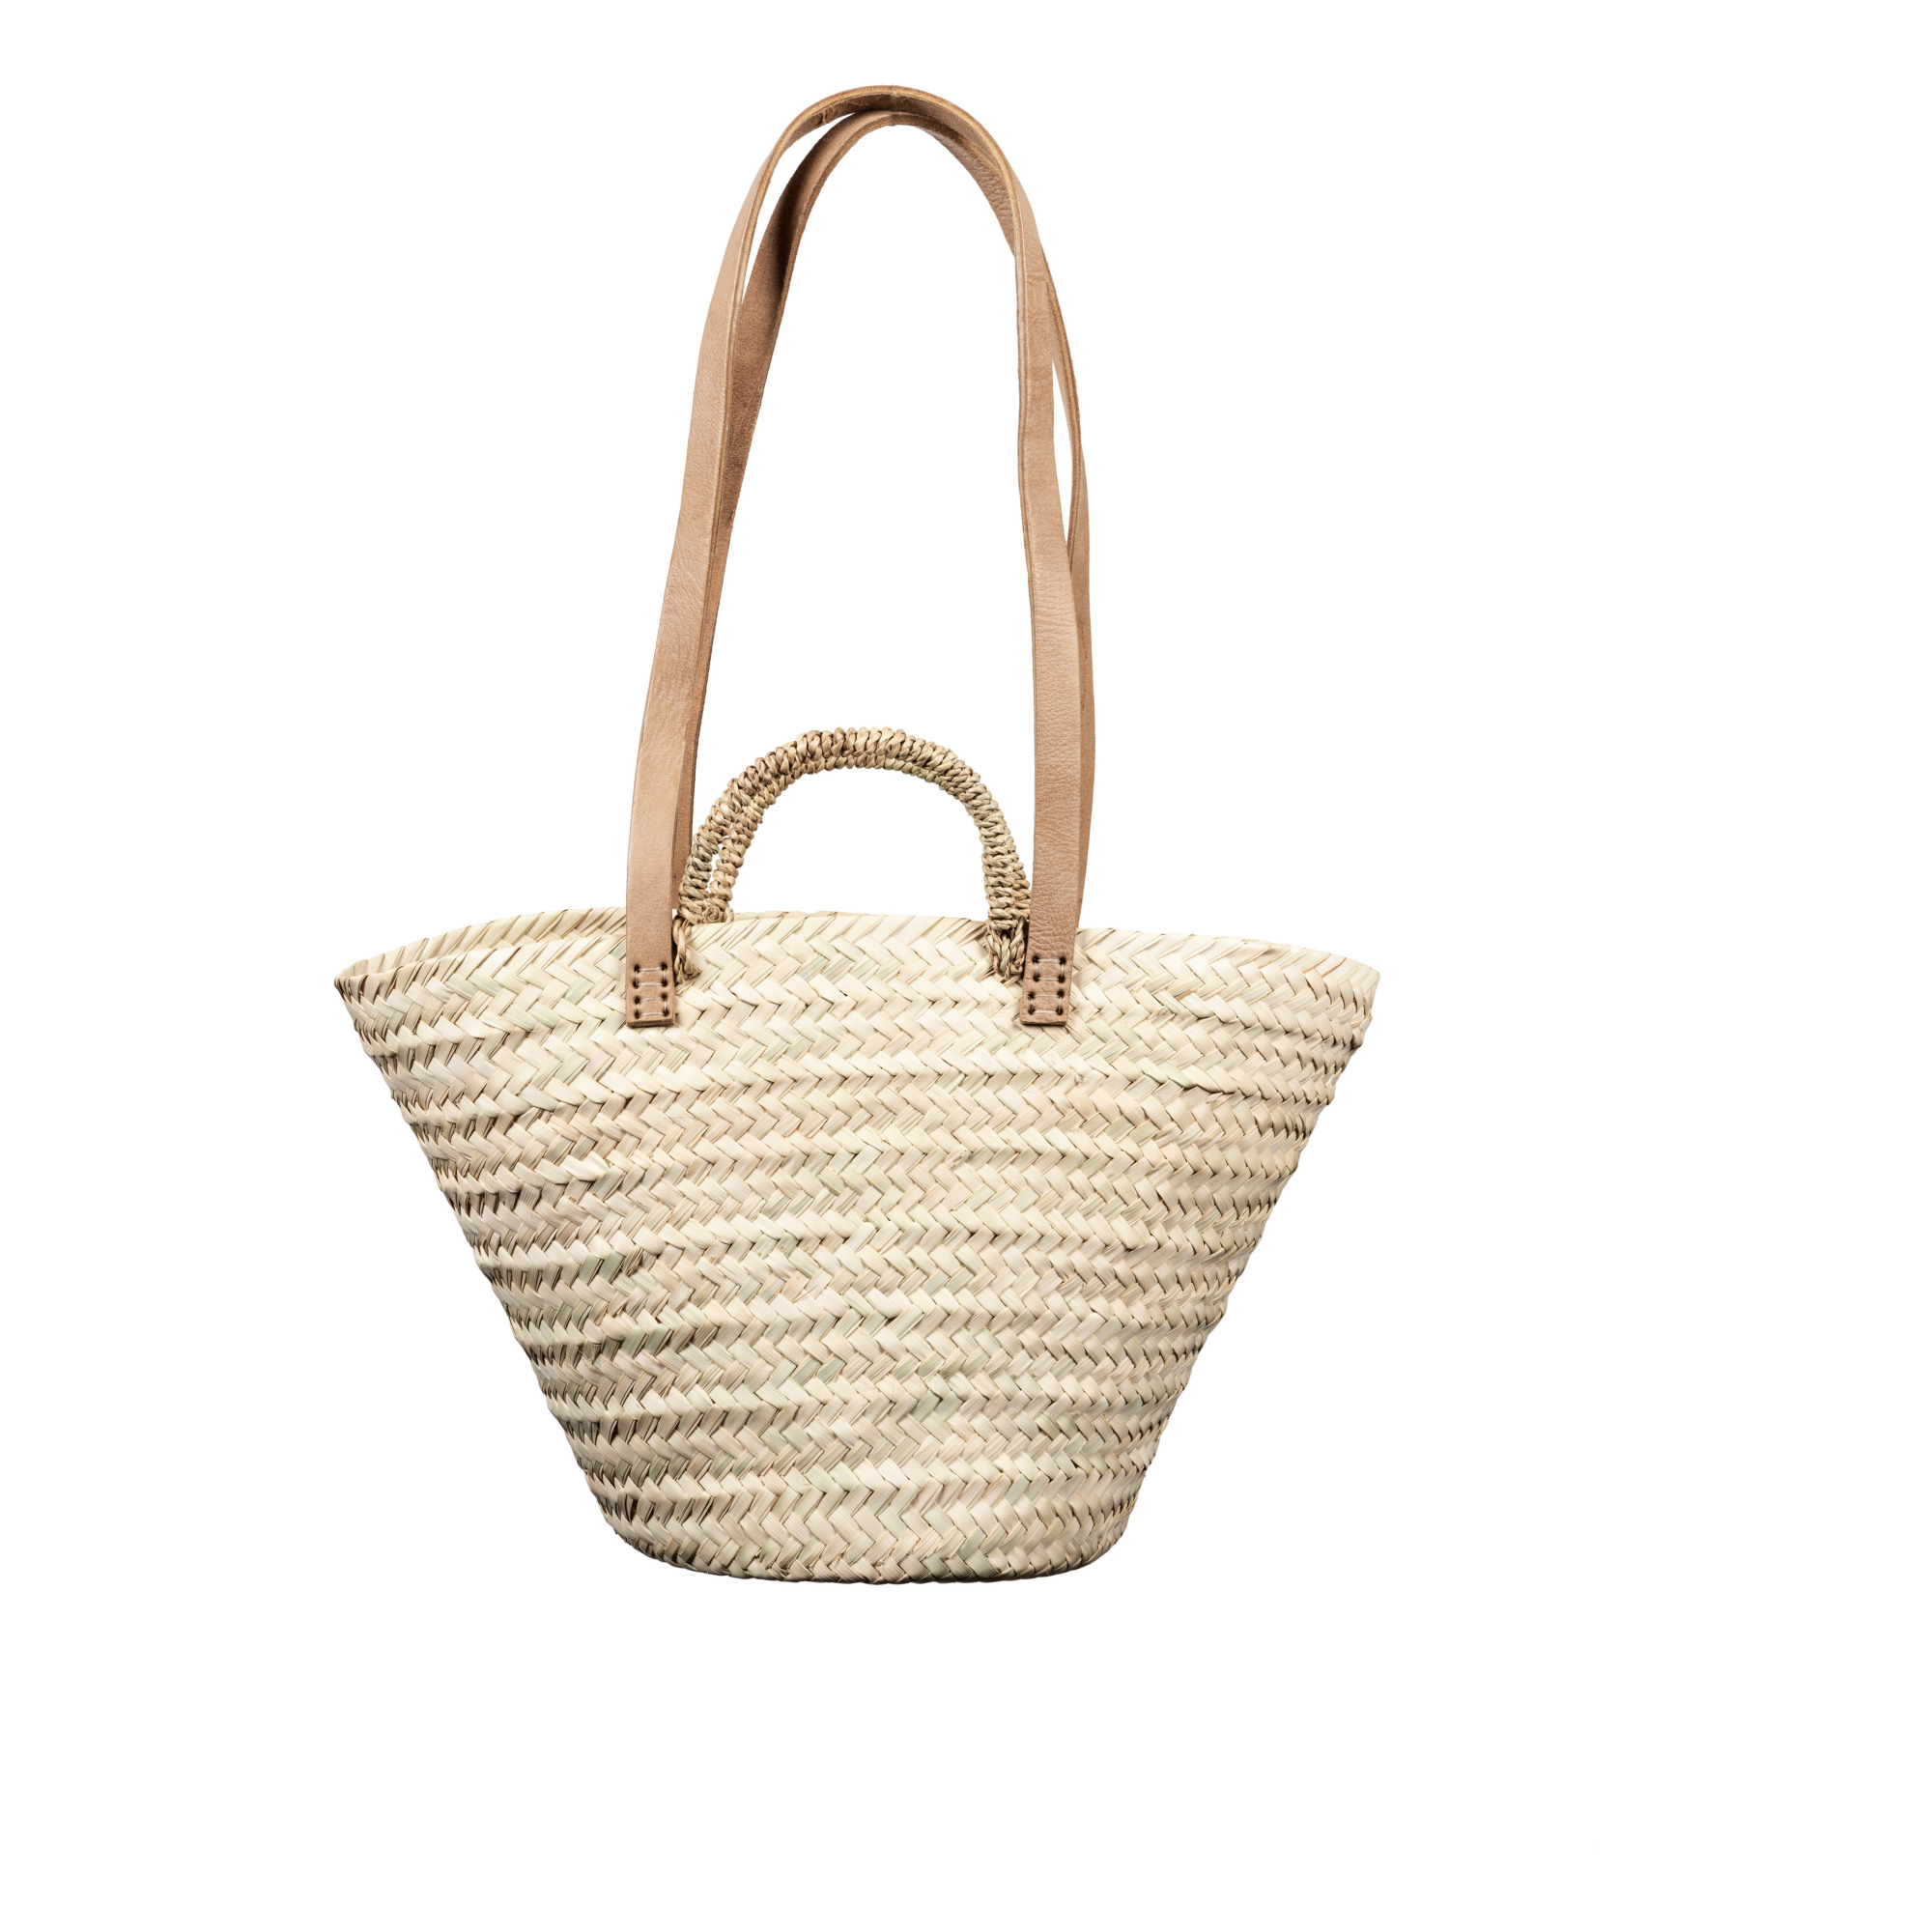 Image of Basket with Leather and Palm Handles